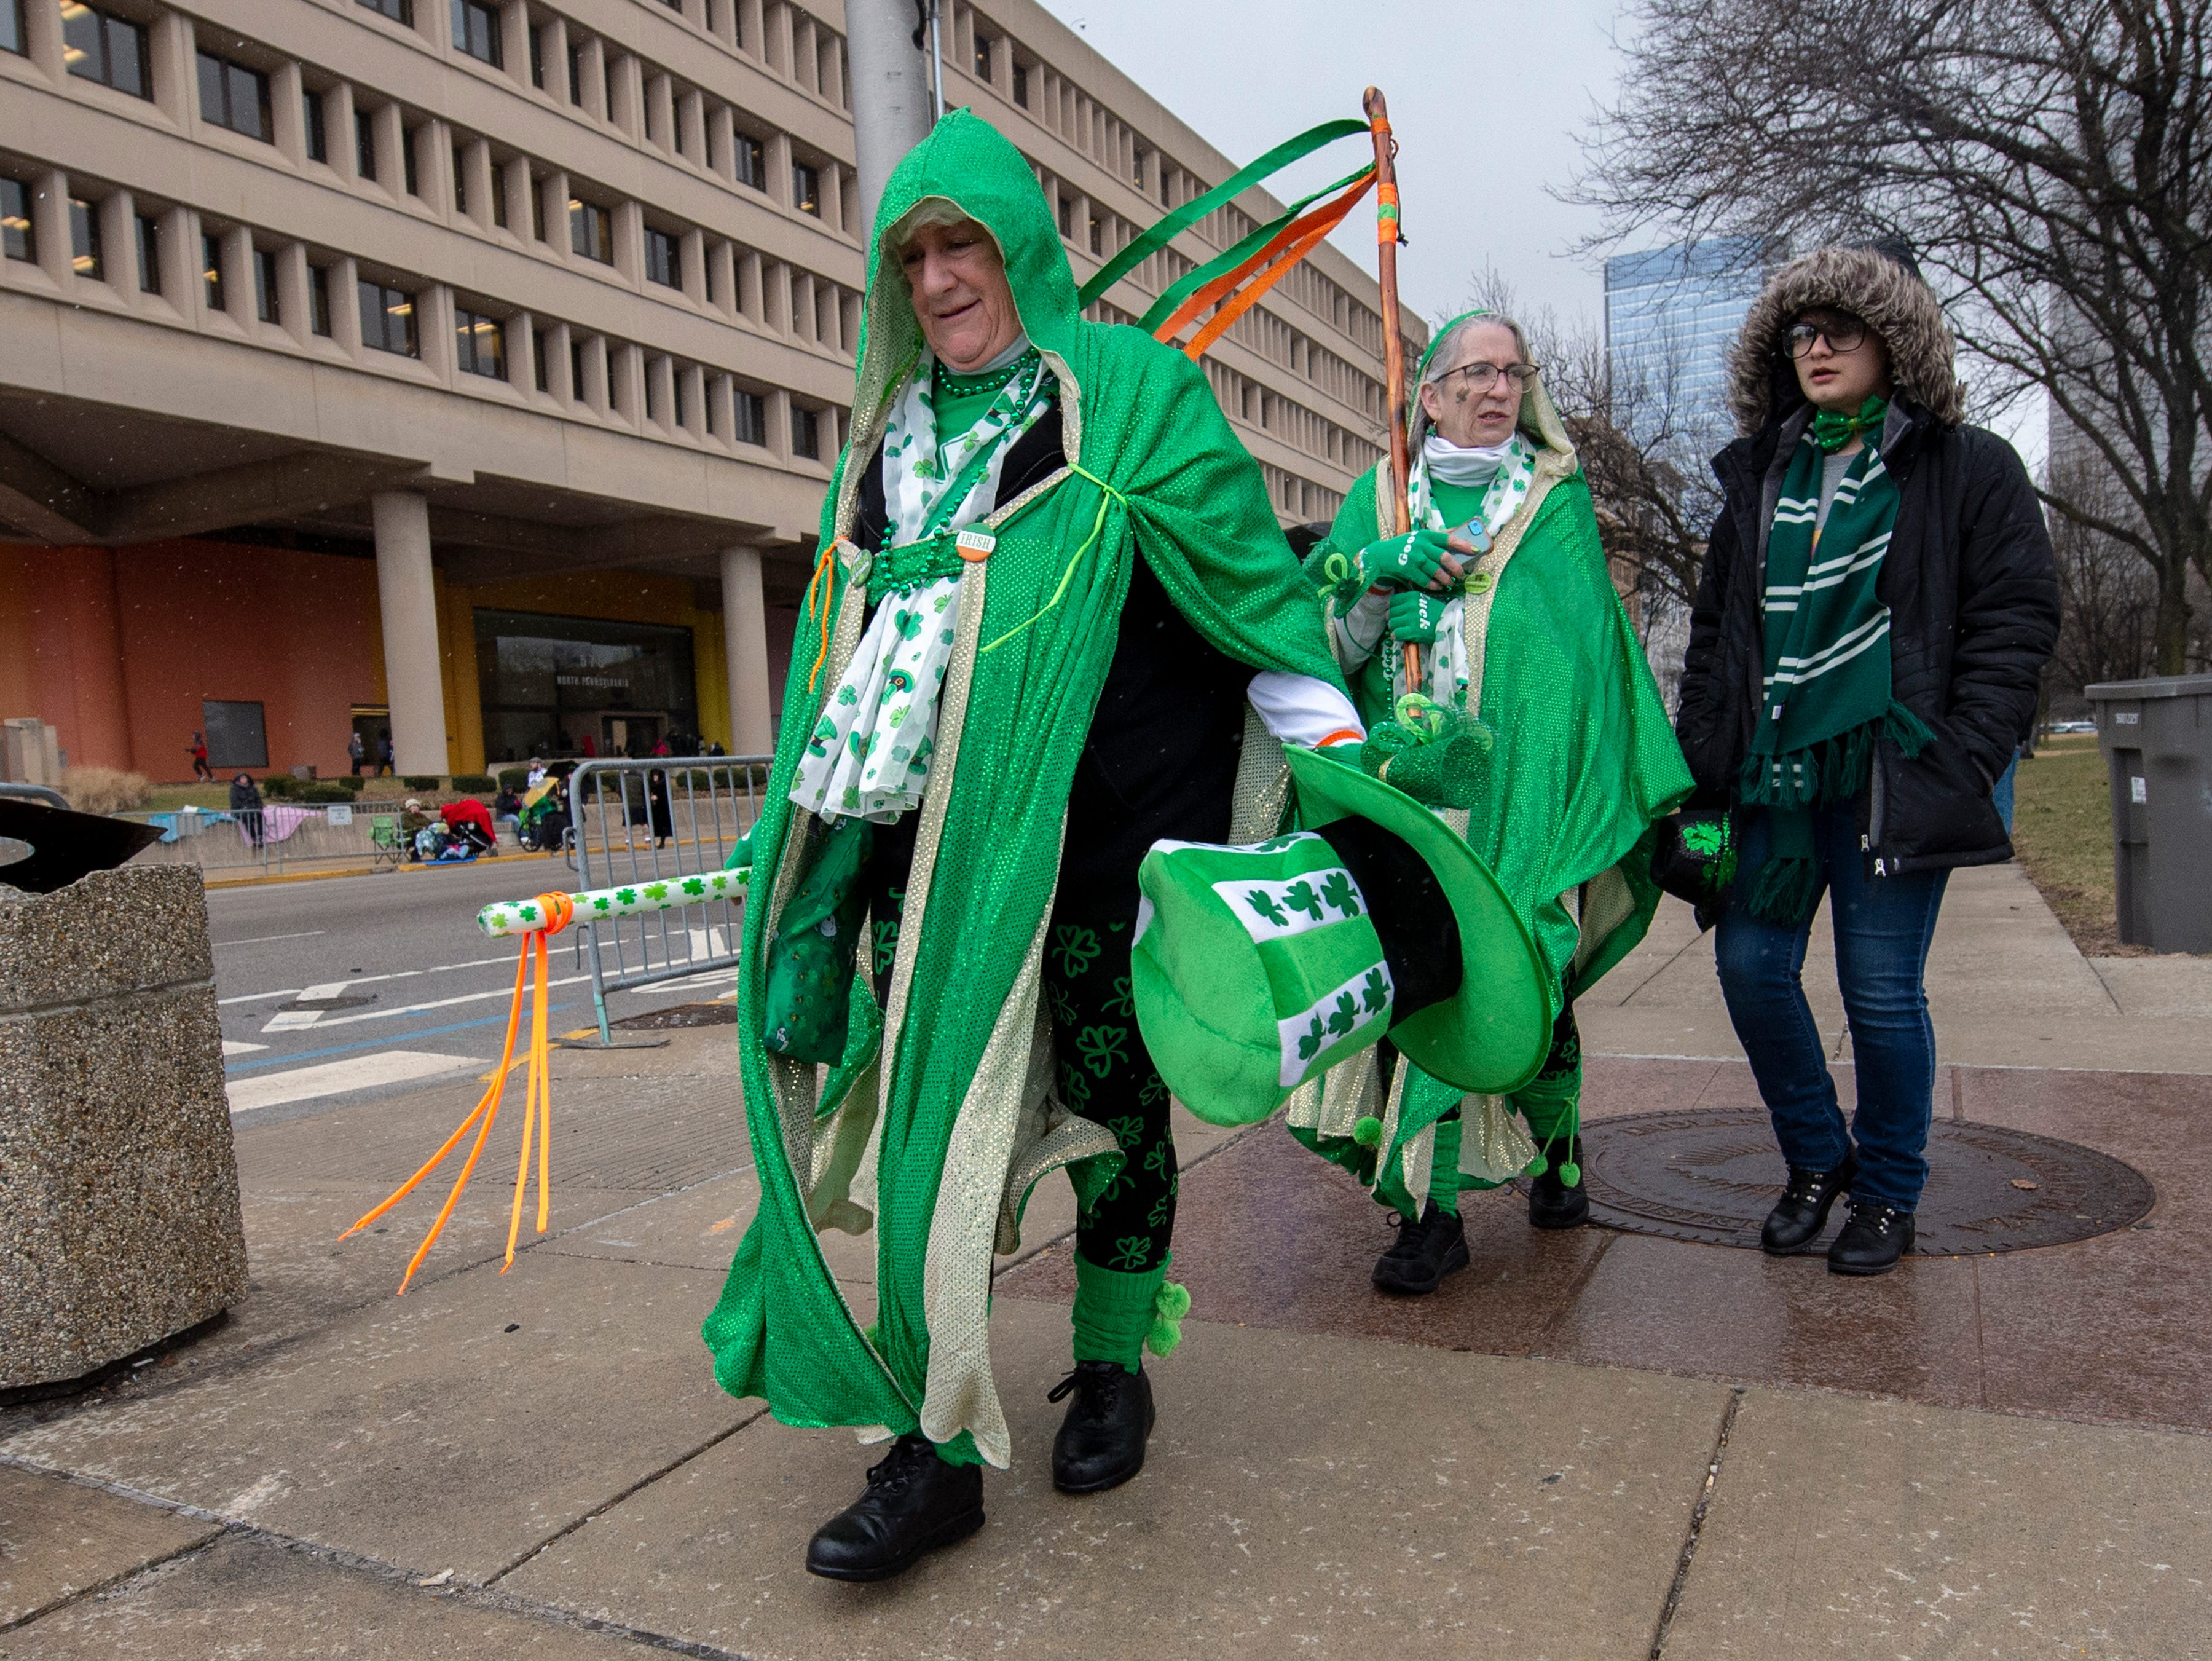 Parade goers, wearing their holiday best, walk along the parade route. The 39th annual St. Patrick's Day Parade navigated the streets of Indianapolis, Friday, March 15, 2019.